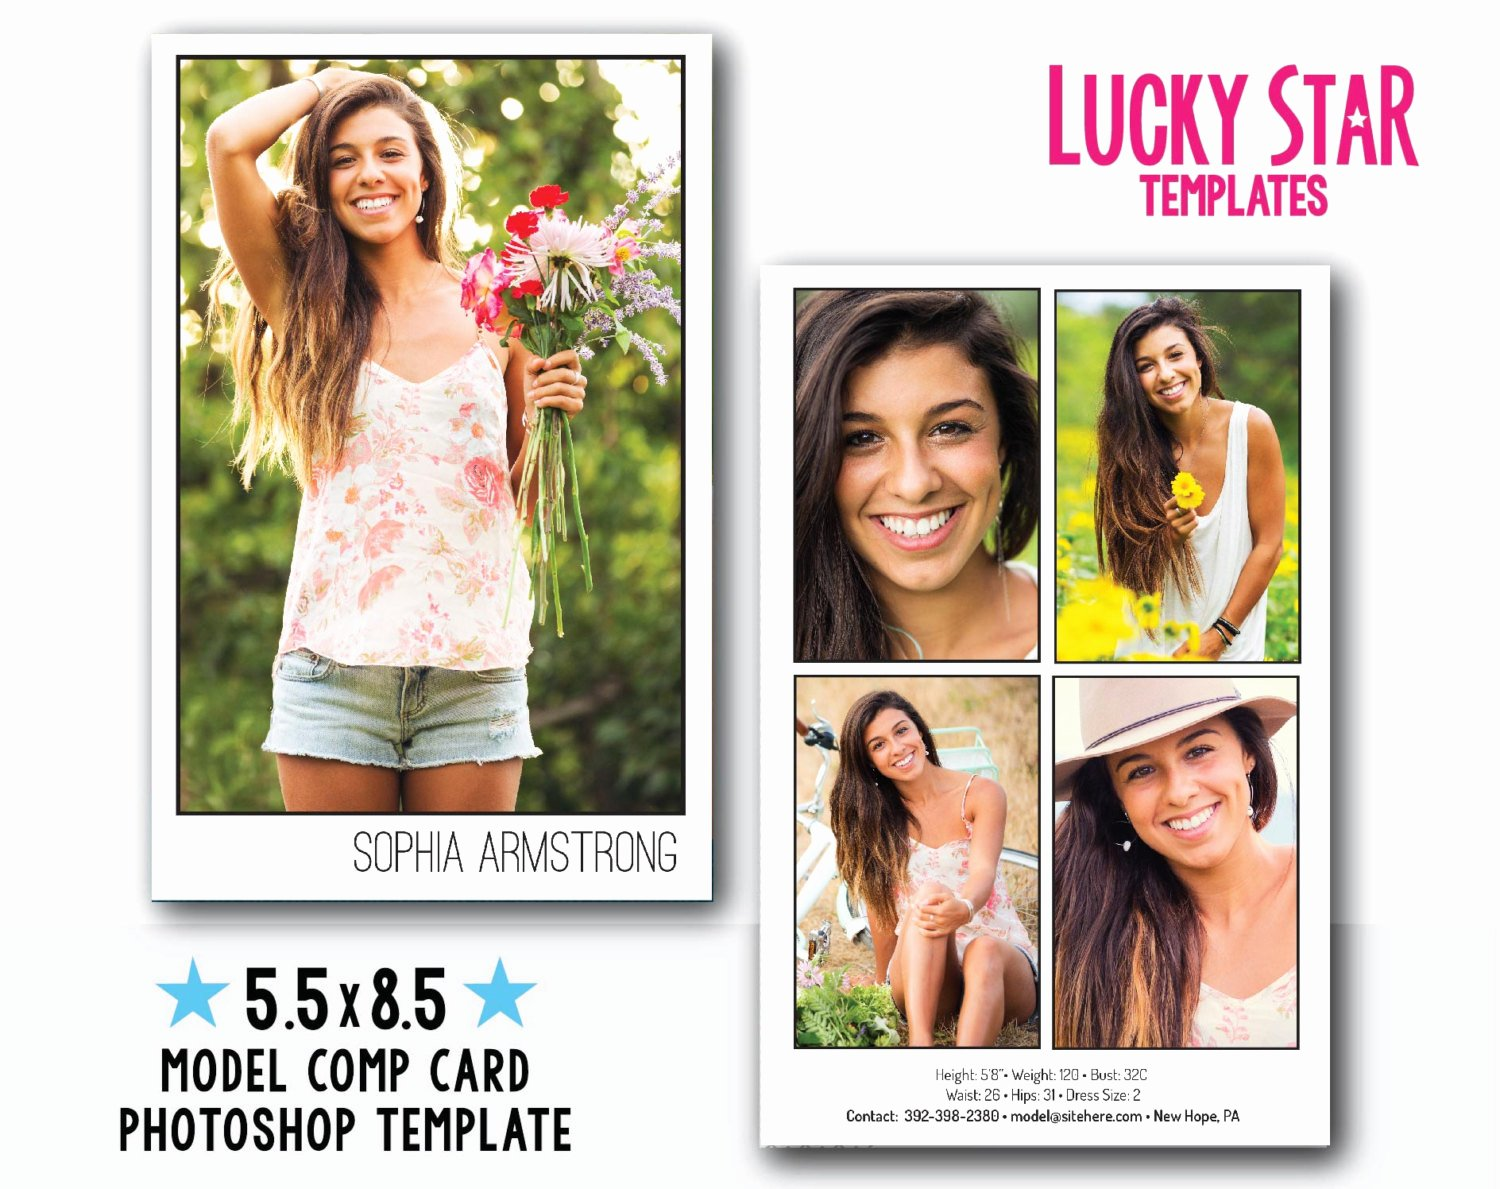 Free Comp Card Template Photoshop Beautiful Customizable Digital Model P Card Power Portraits